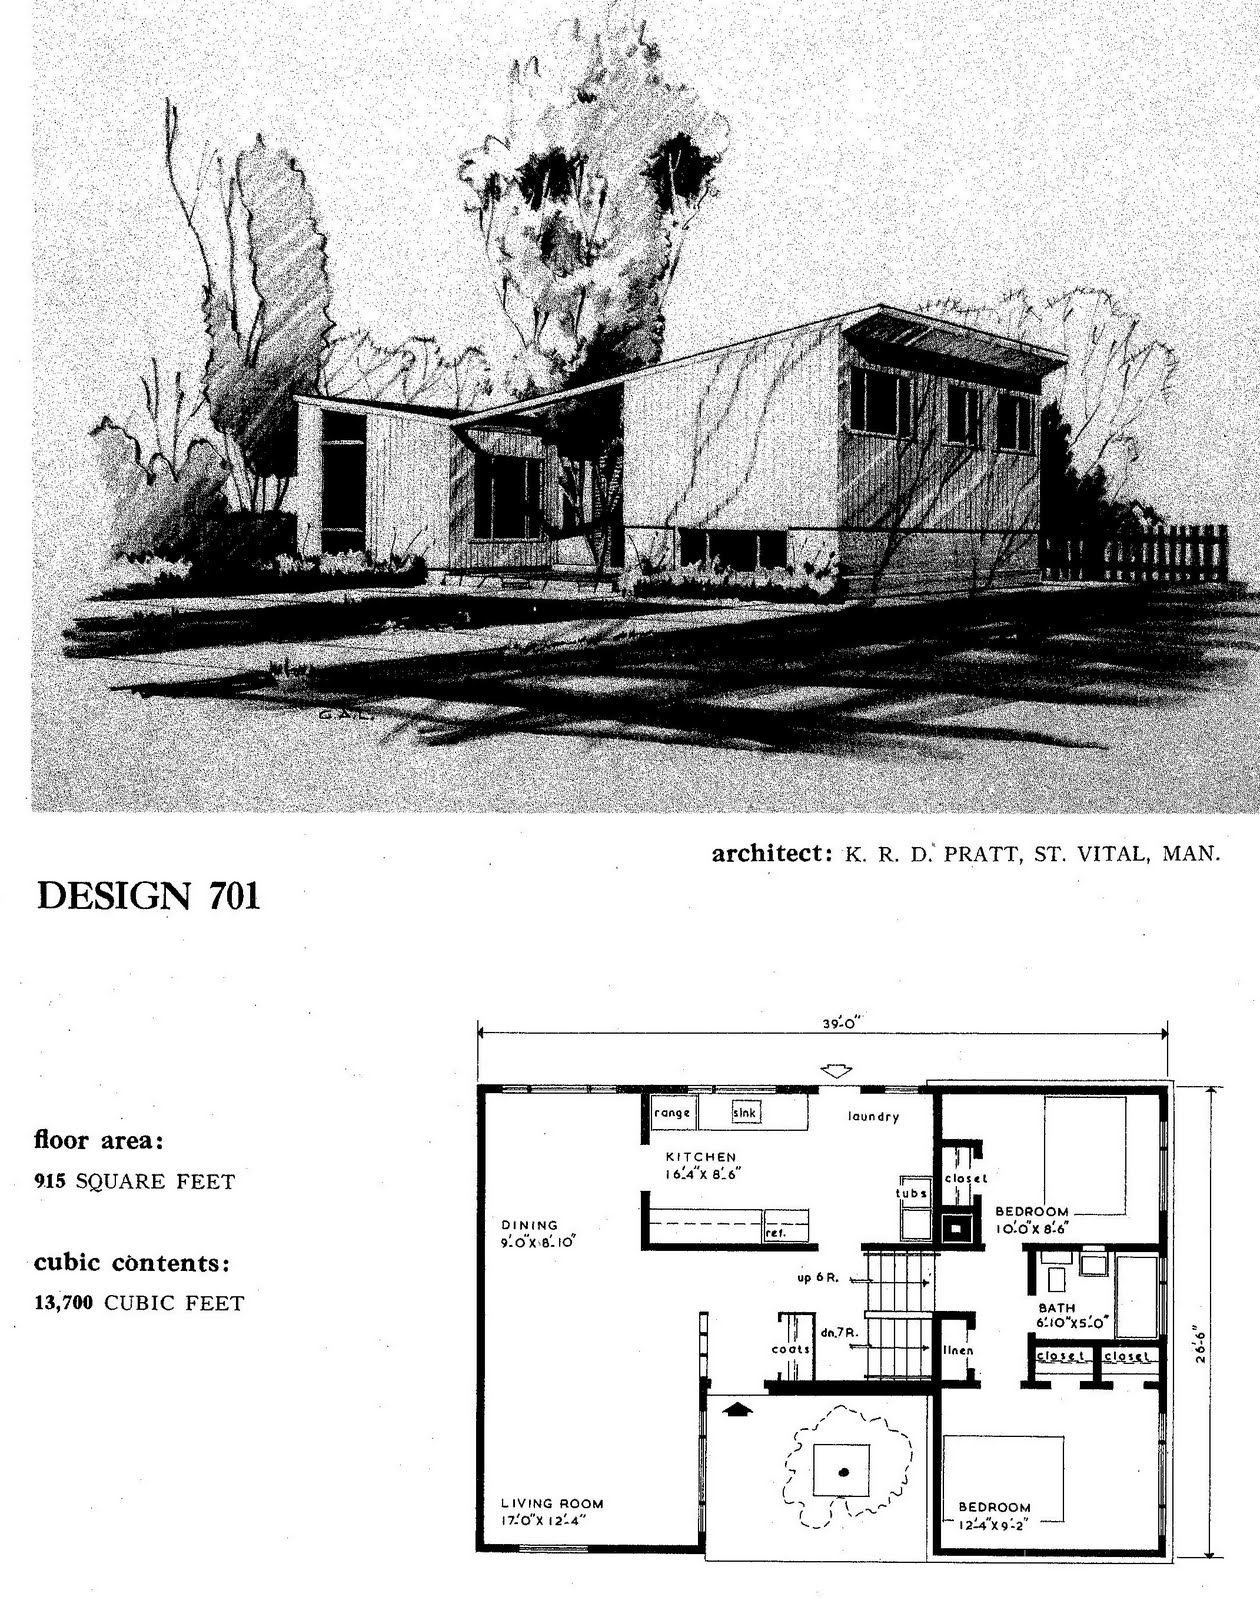 MidCentury Modern and 1970sEra Ottawa CMHC house designs from